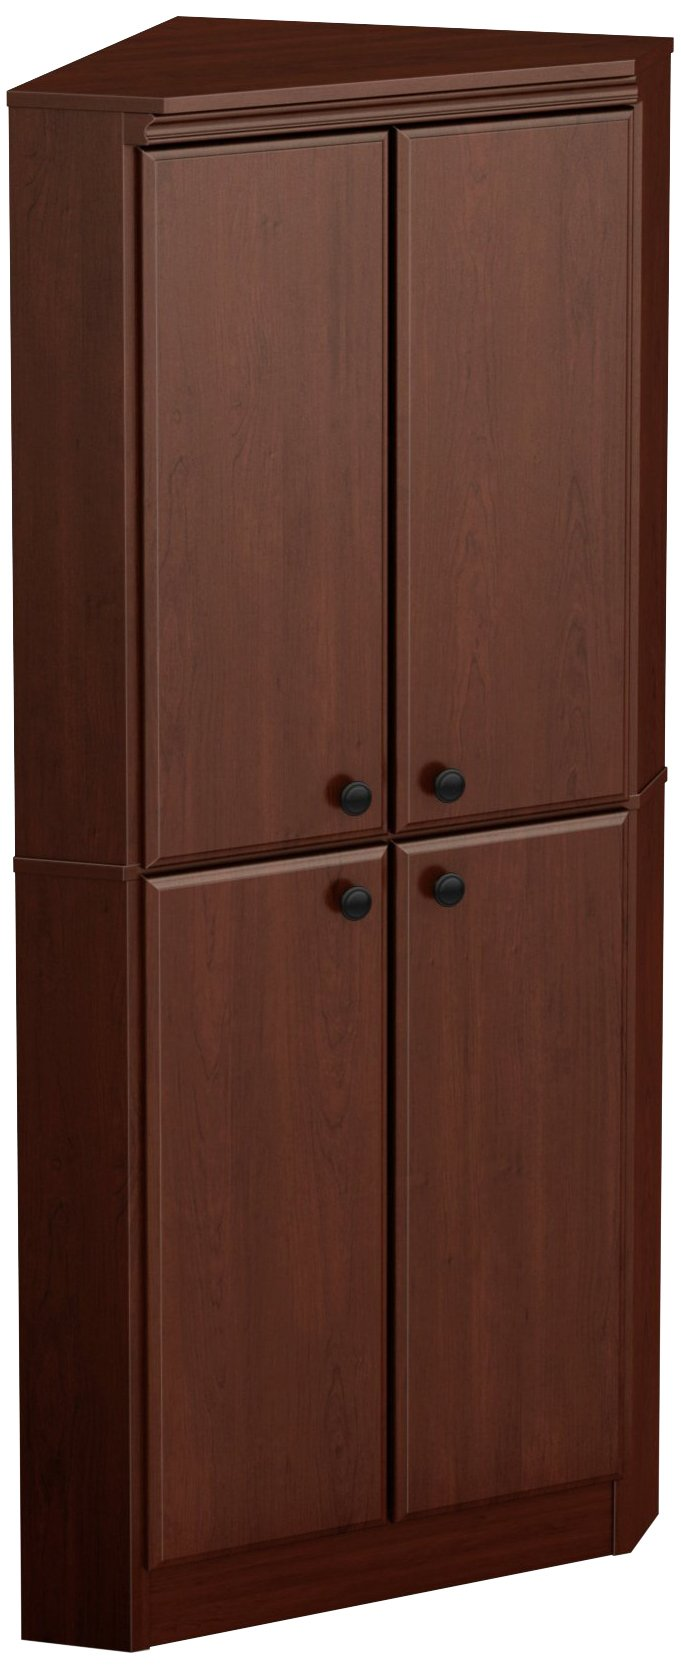 South Shore 4-Door Corner Armoire for Small Space with Adjustable Shelves, Royal Cherry by South Shore